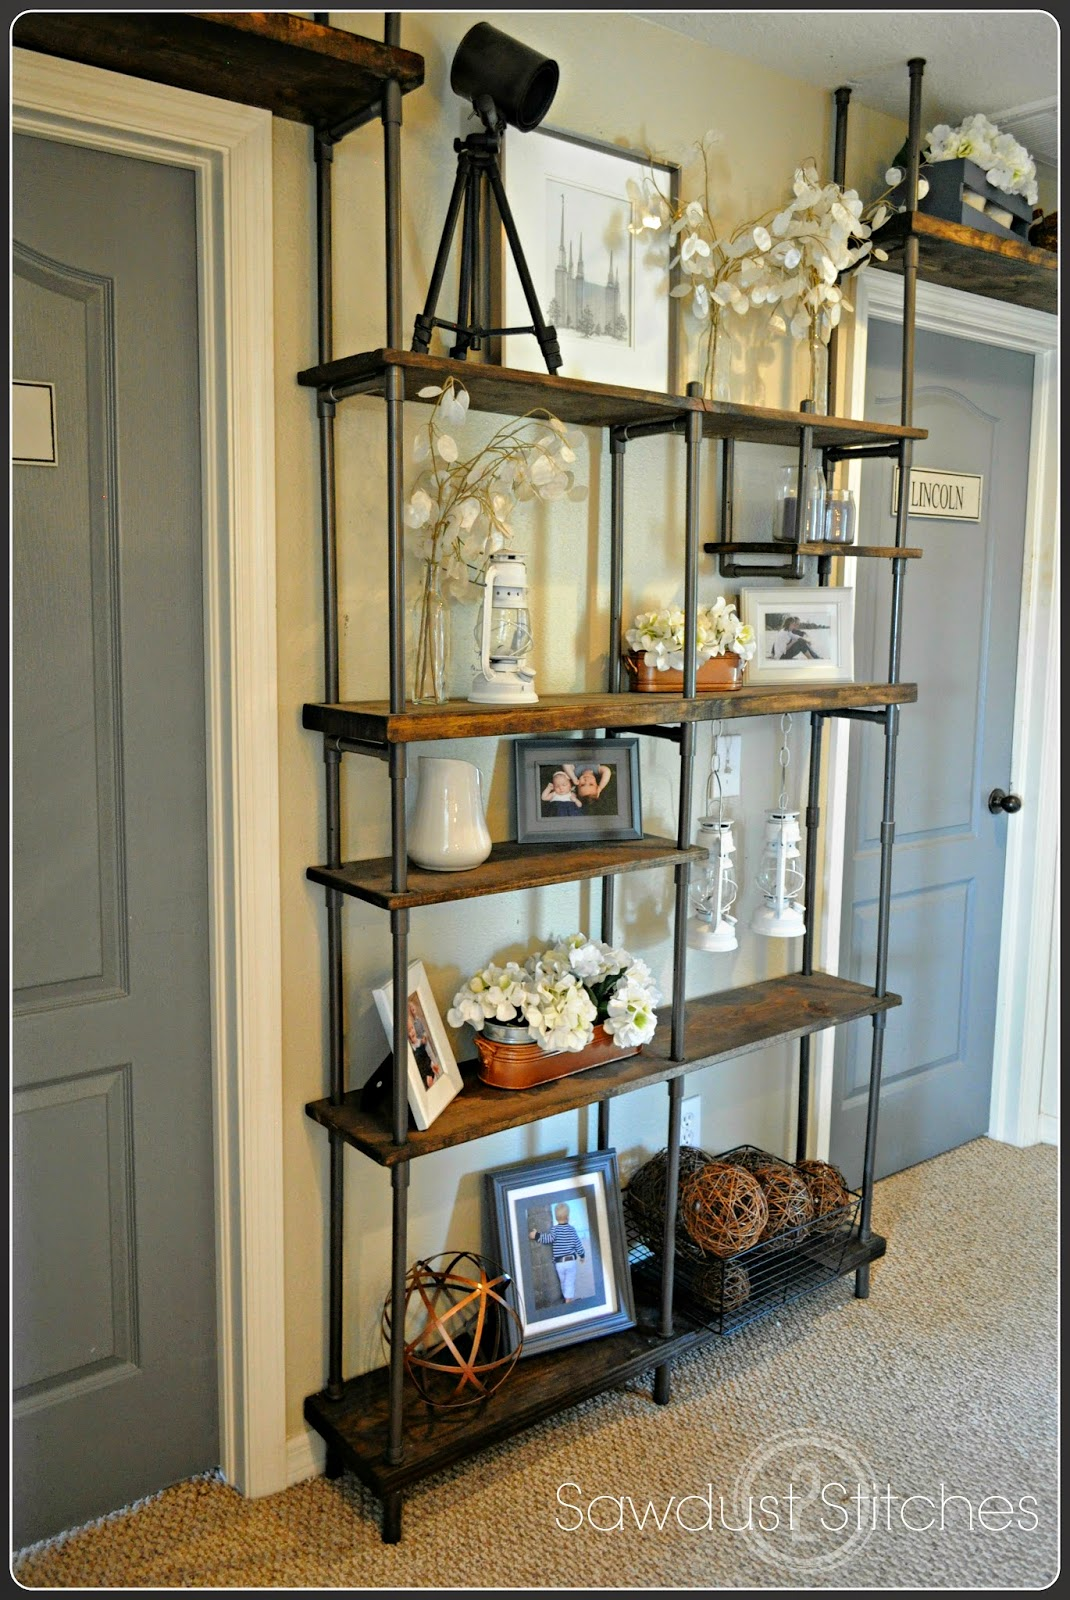 Awesome Build An Industrial Shelf Using PVC Pipe, Sawdust 2 Stitches On  Remodelaholic